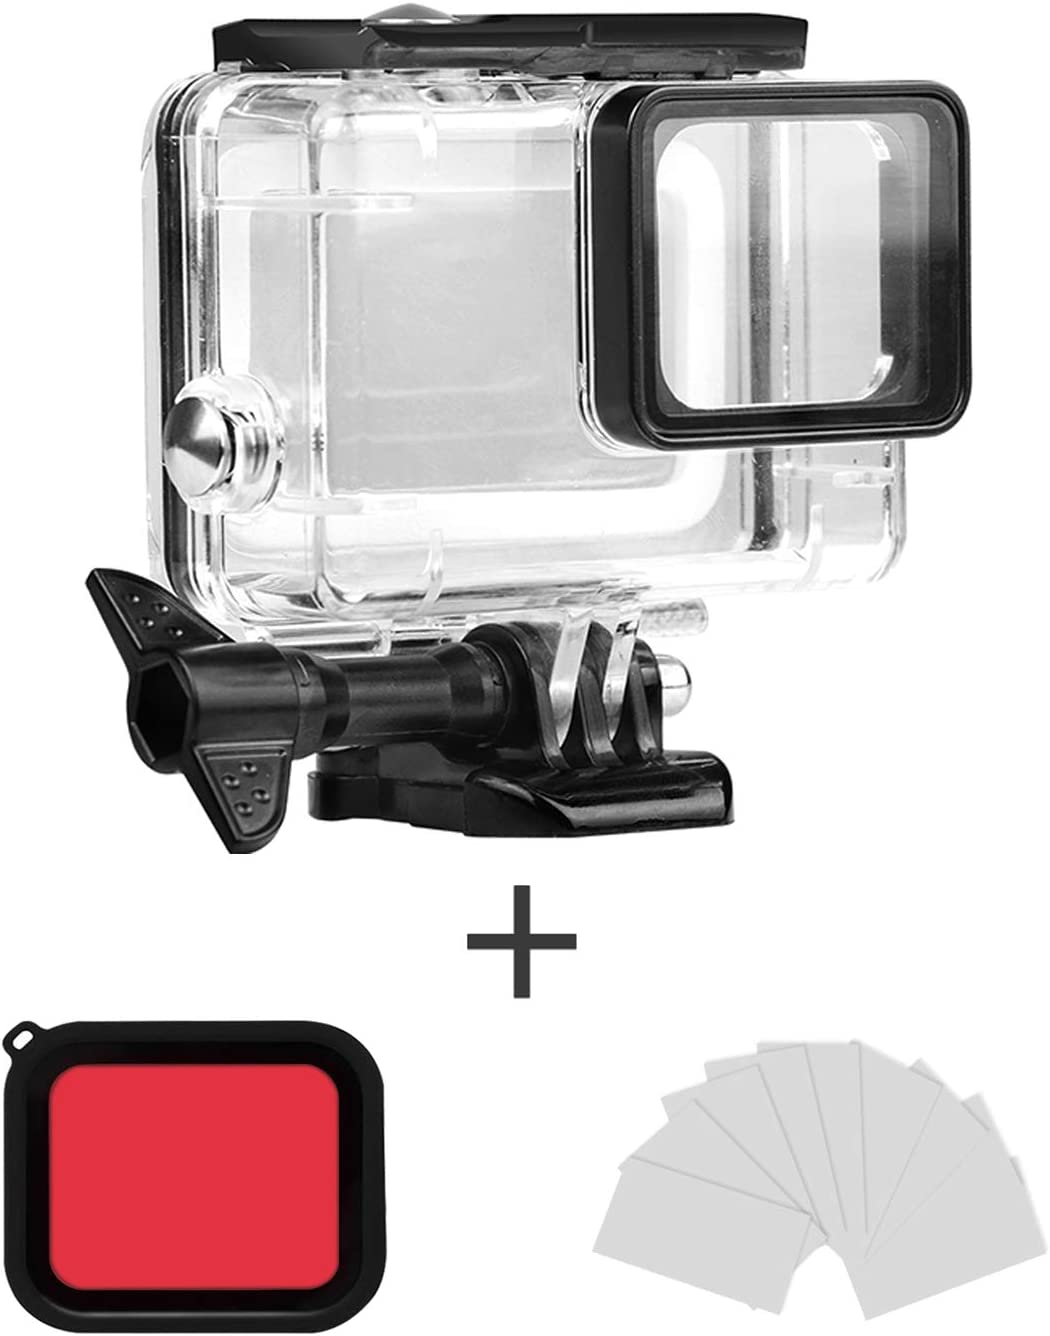 FINEST+ Waterproof Housing Shell for GoPro Hero 7/2018/6/5 Black Diving Protective Housing Case 45m with Red Filter and Bracket Accessories for Go Pro Hero7/2018/6/5 Action Camera